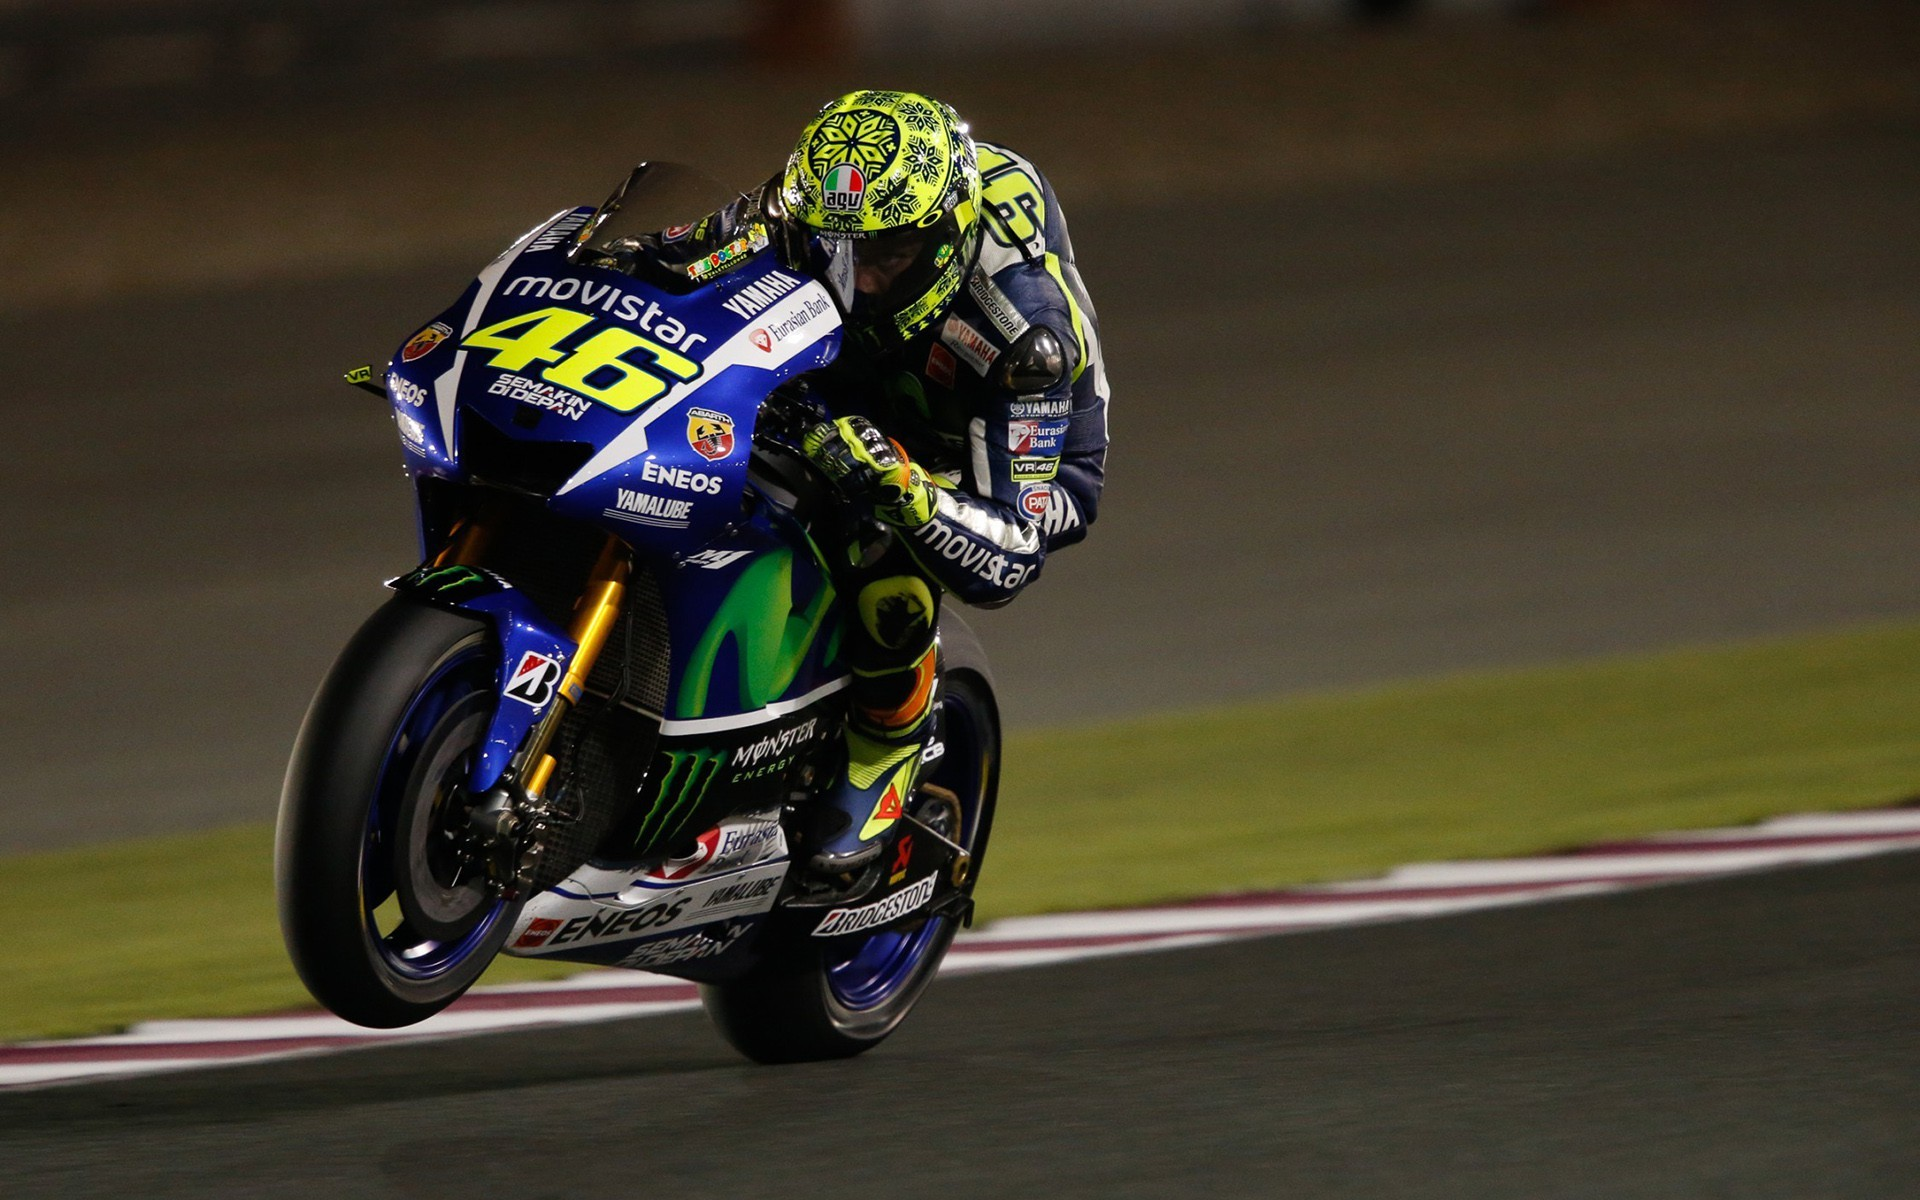 Valentino Rossi Wallpaper HD 65 Images